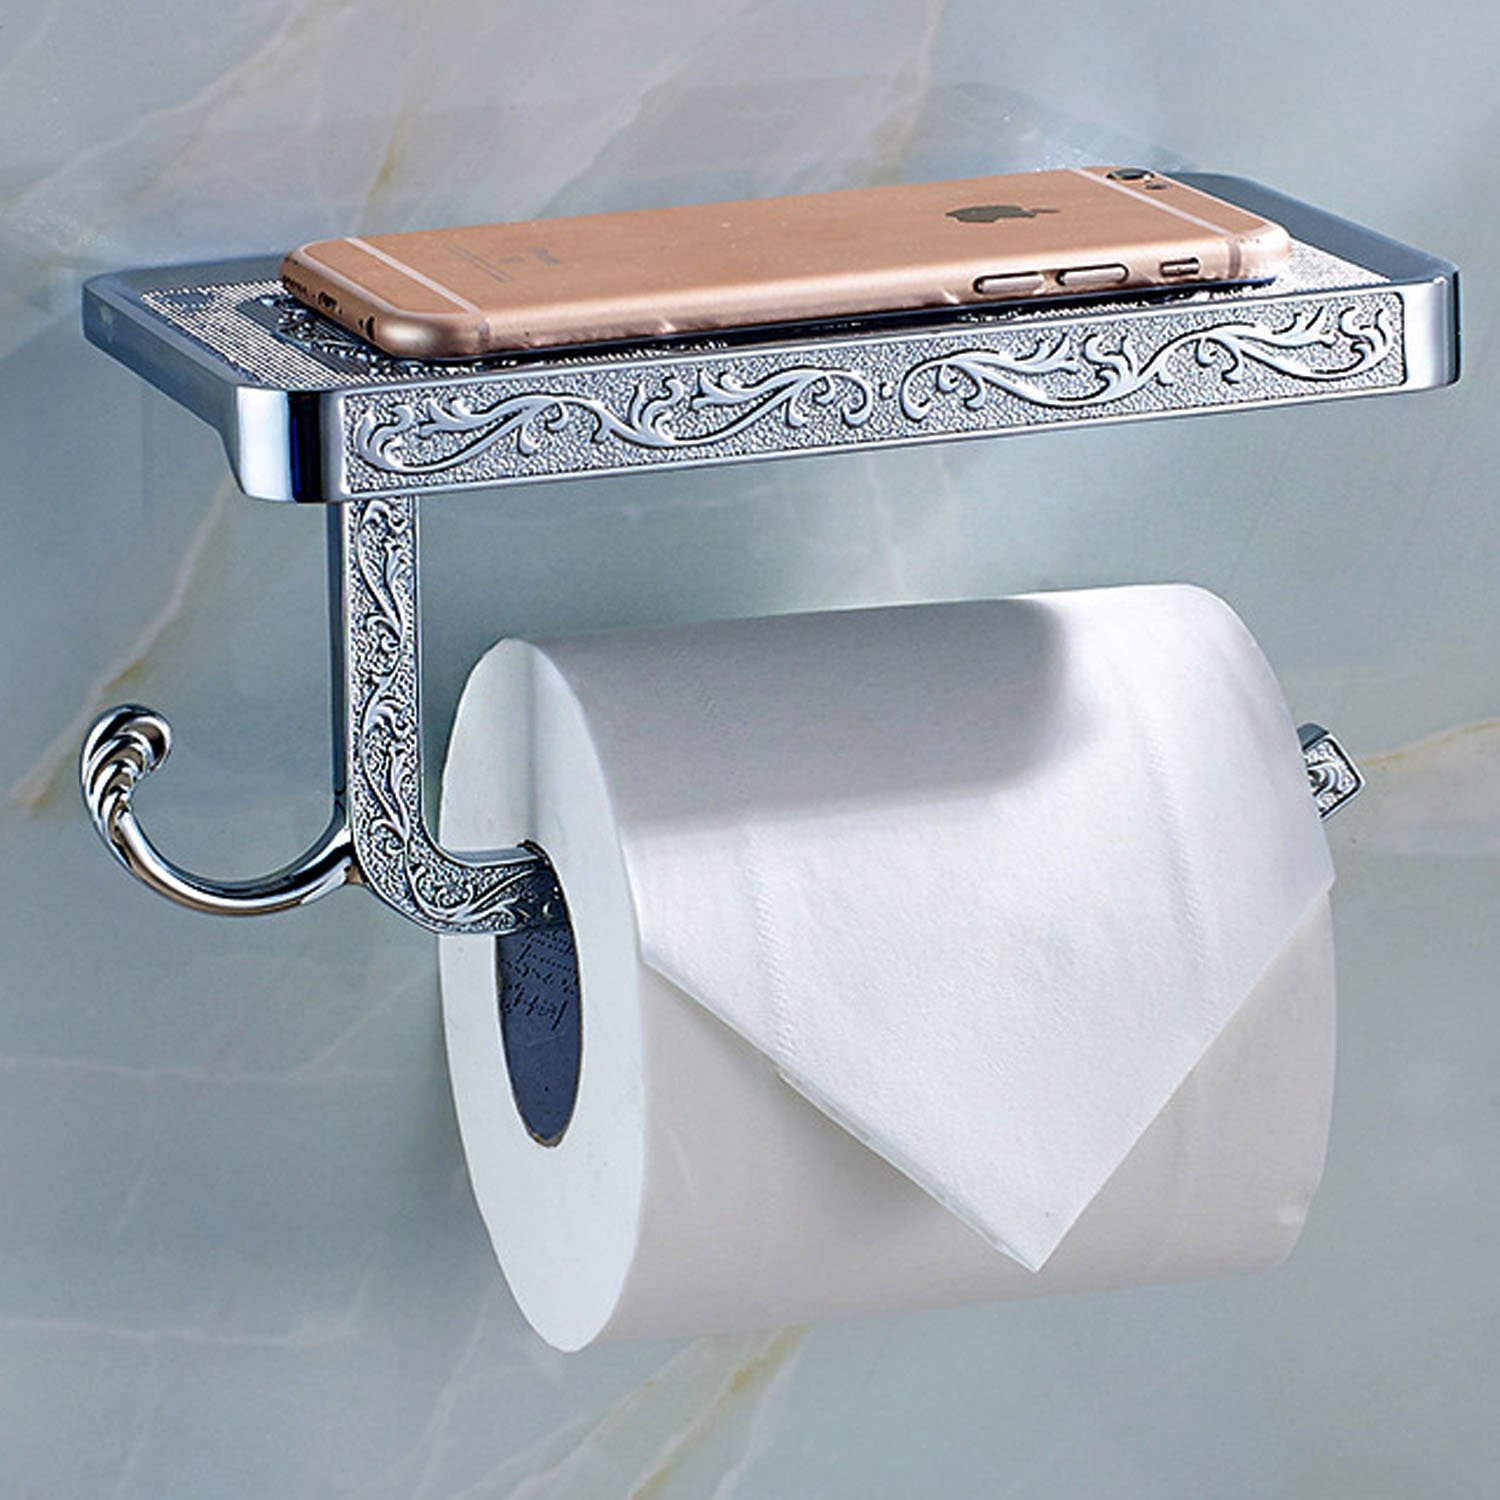 ThinkTop Antique Carving Toilet Roll Paper Holder with Phone Shelf Wall Mounted Bathroom Paper Rack and Hook-Gold